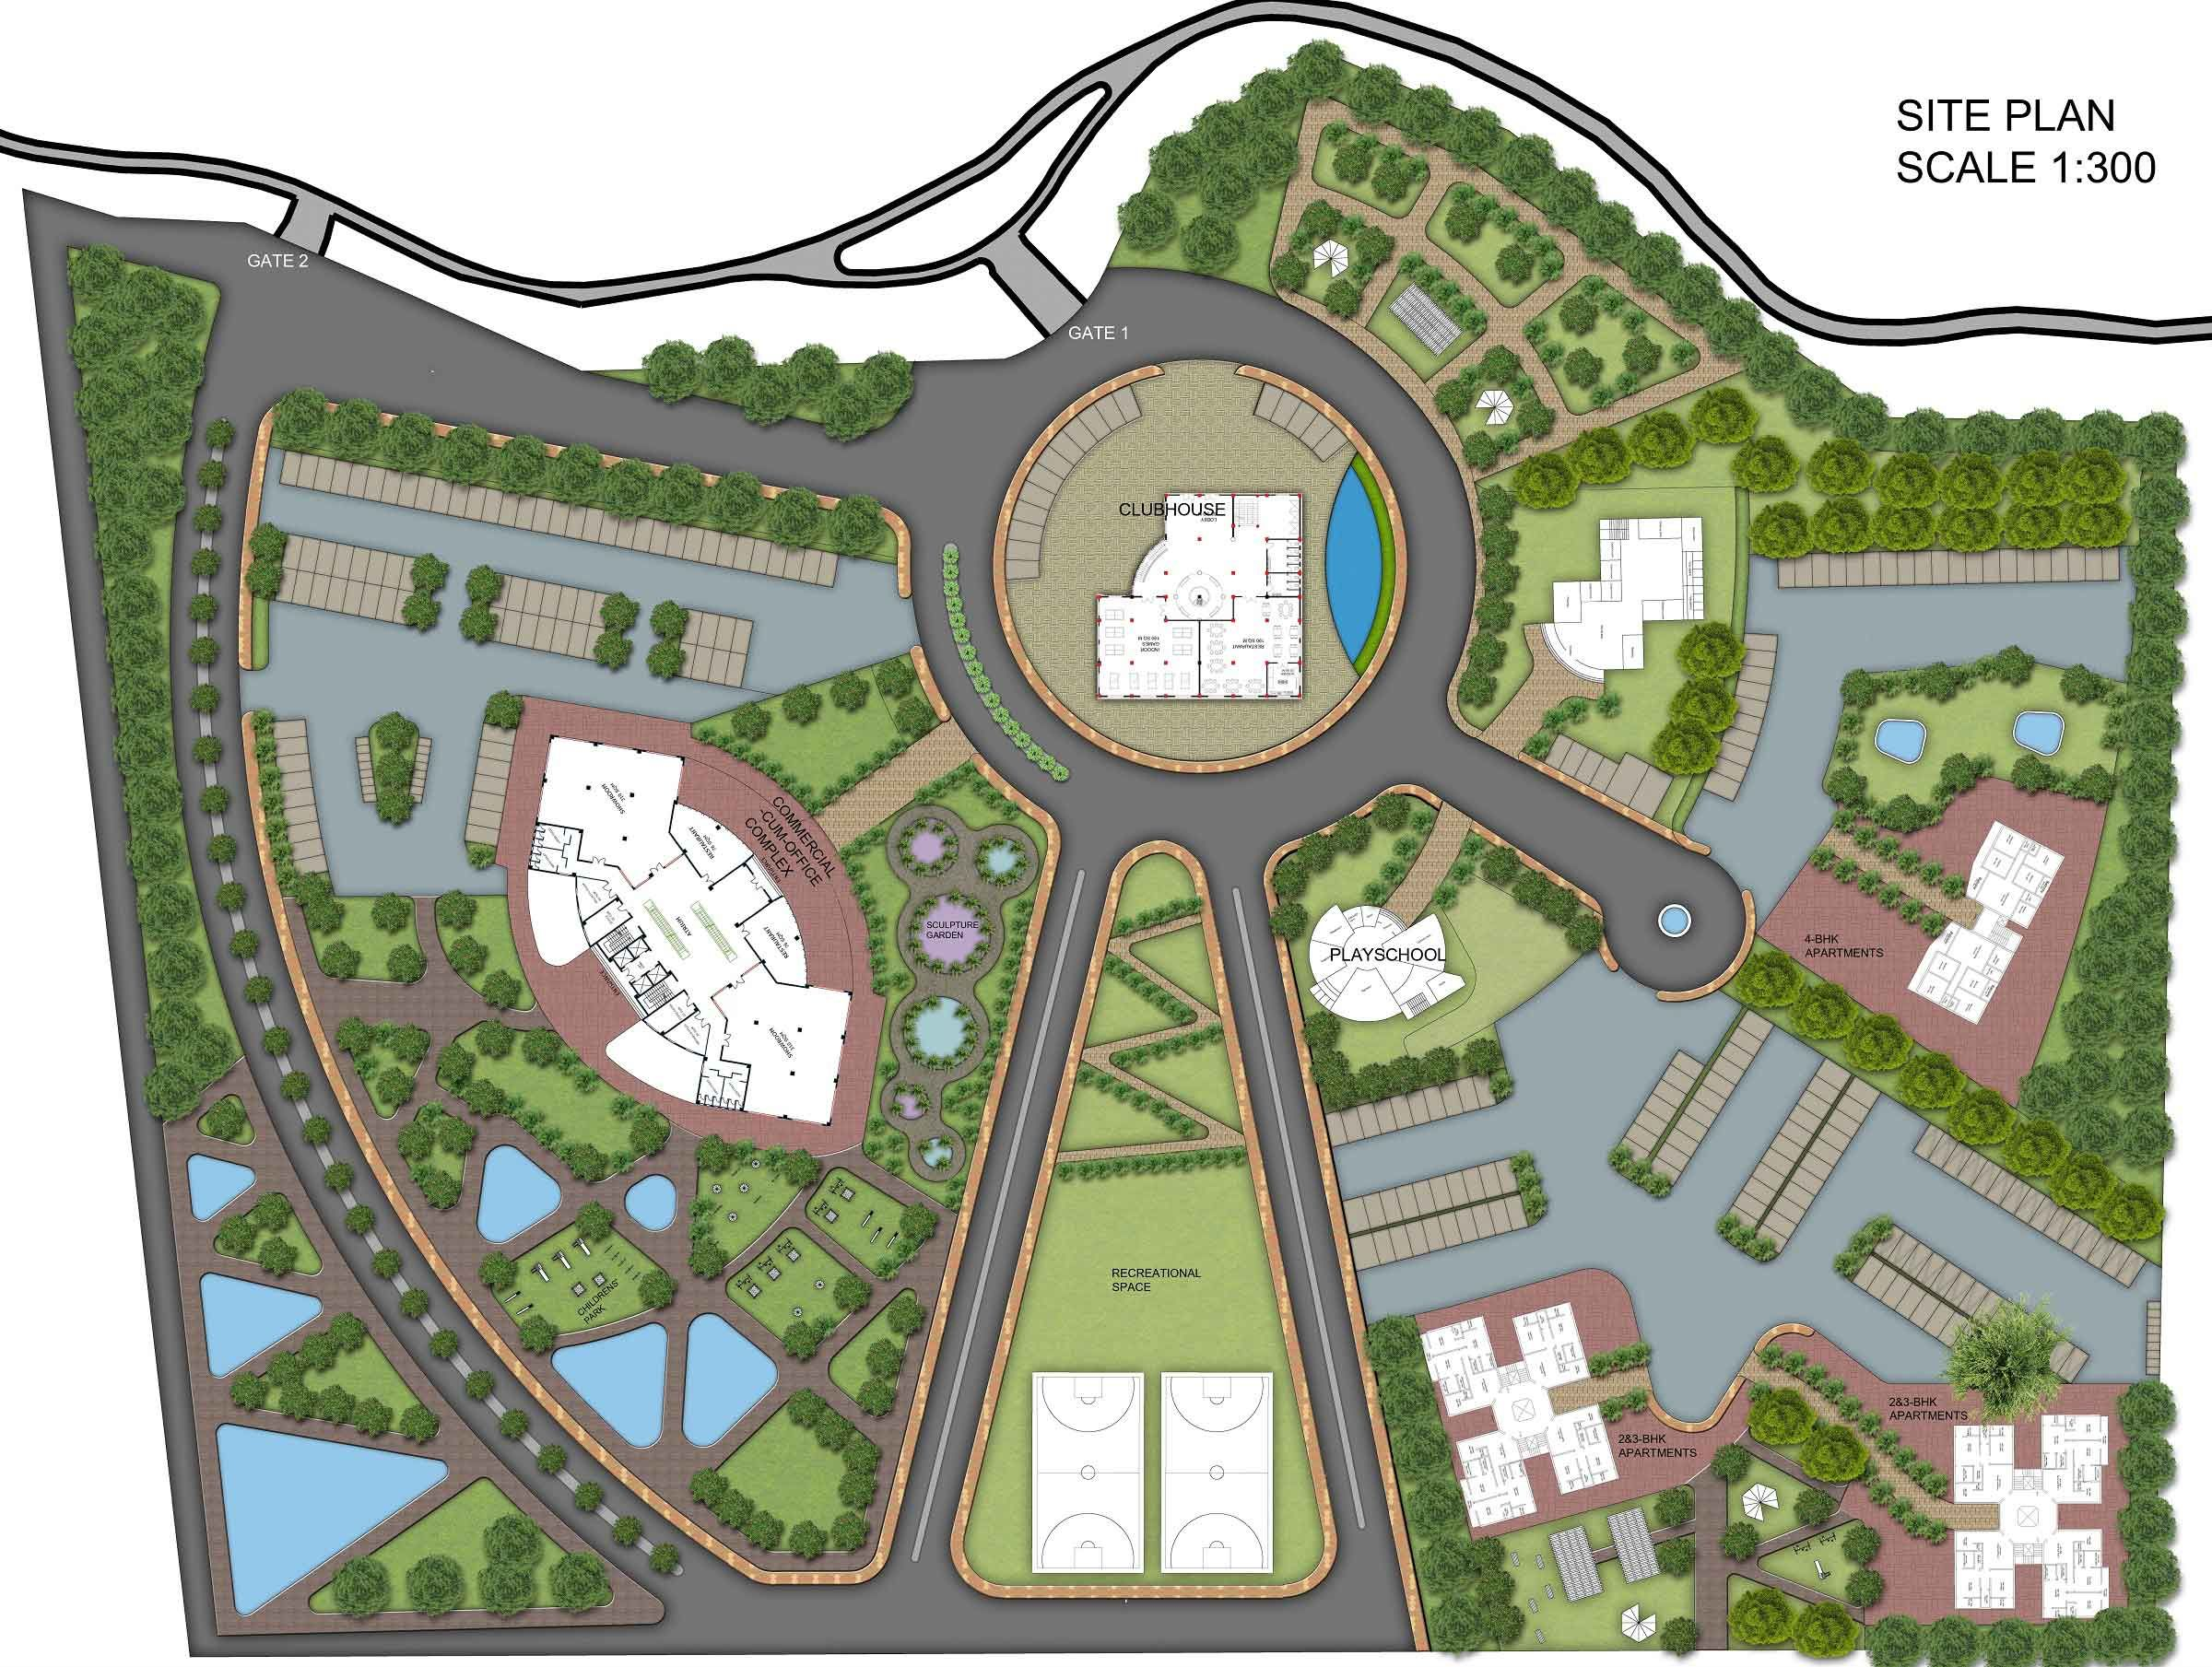 Mix Use Complex Site Plan Rendering With Ground Floor Plans Site Plan Rendering Site Plan Ground Floor Plan